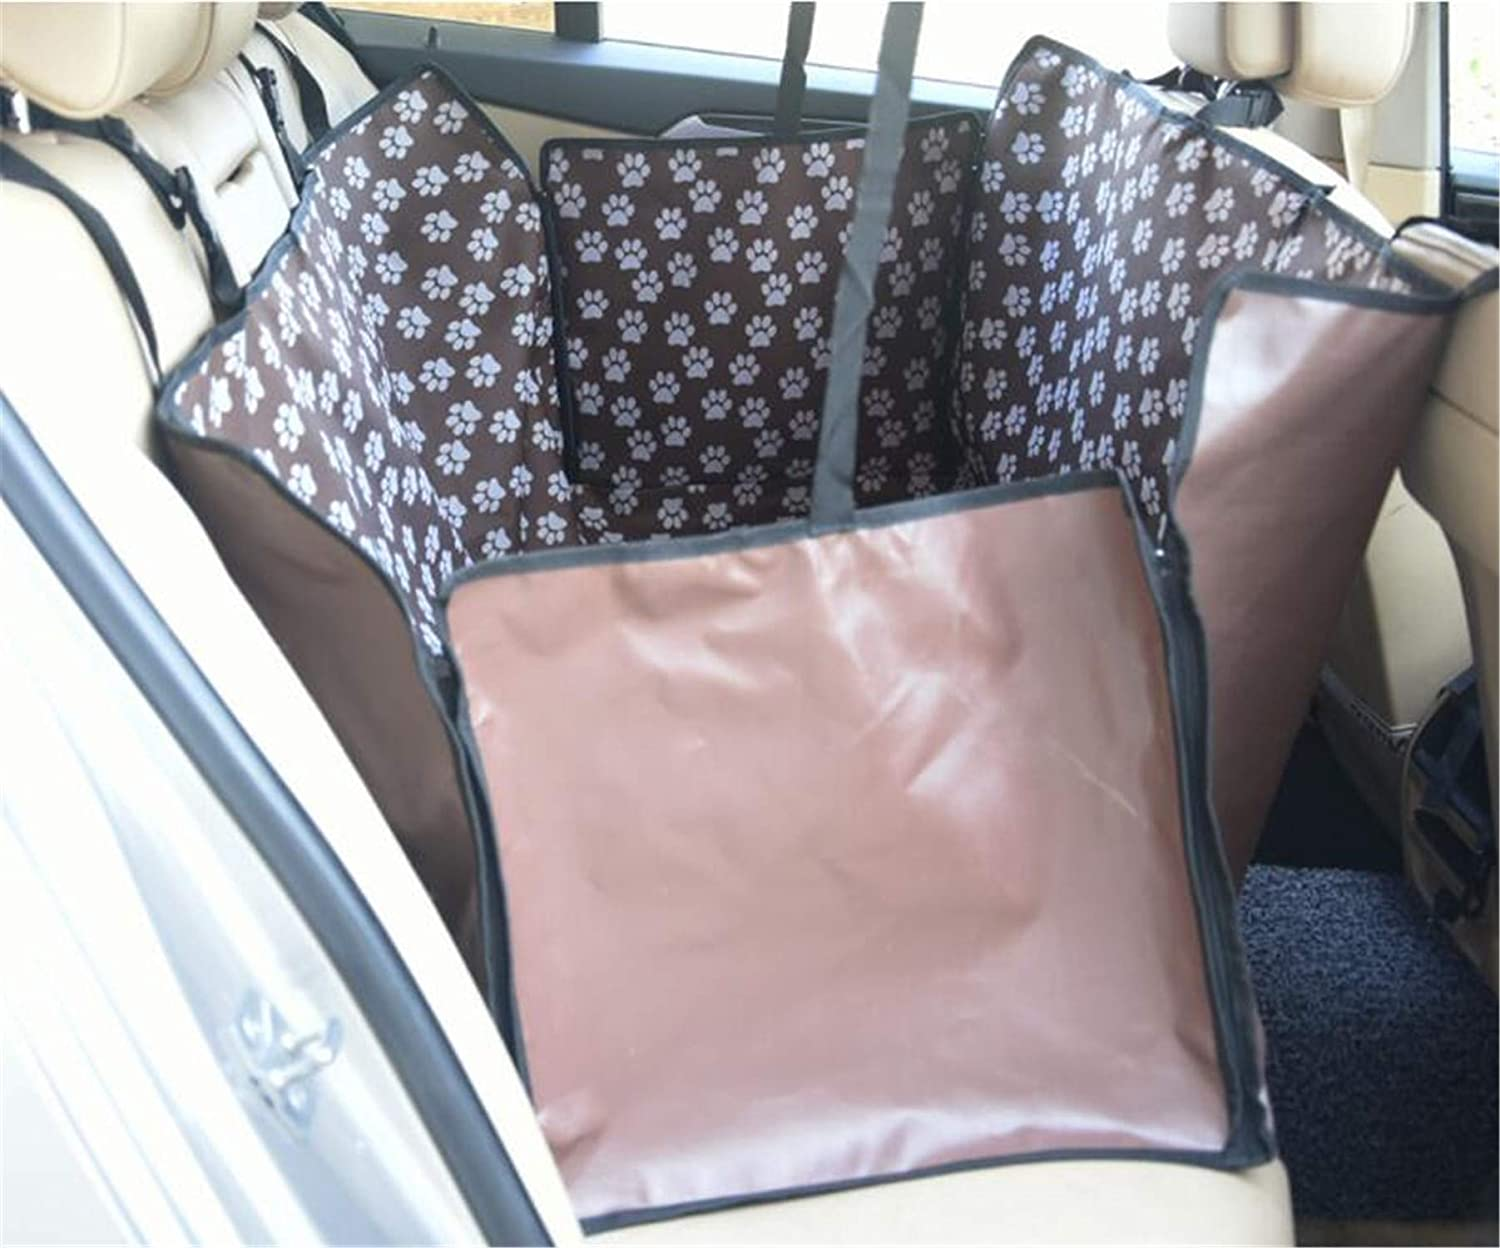 Brown Dog Seat Cover,Rear Seat Oxford Cloth Waterproof Zipper Medium and Large Dog Metal Hook Floral Print,Safe and Comfortable